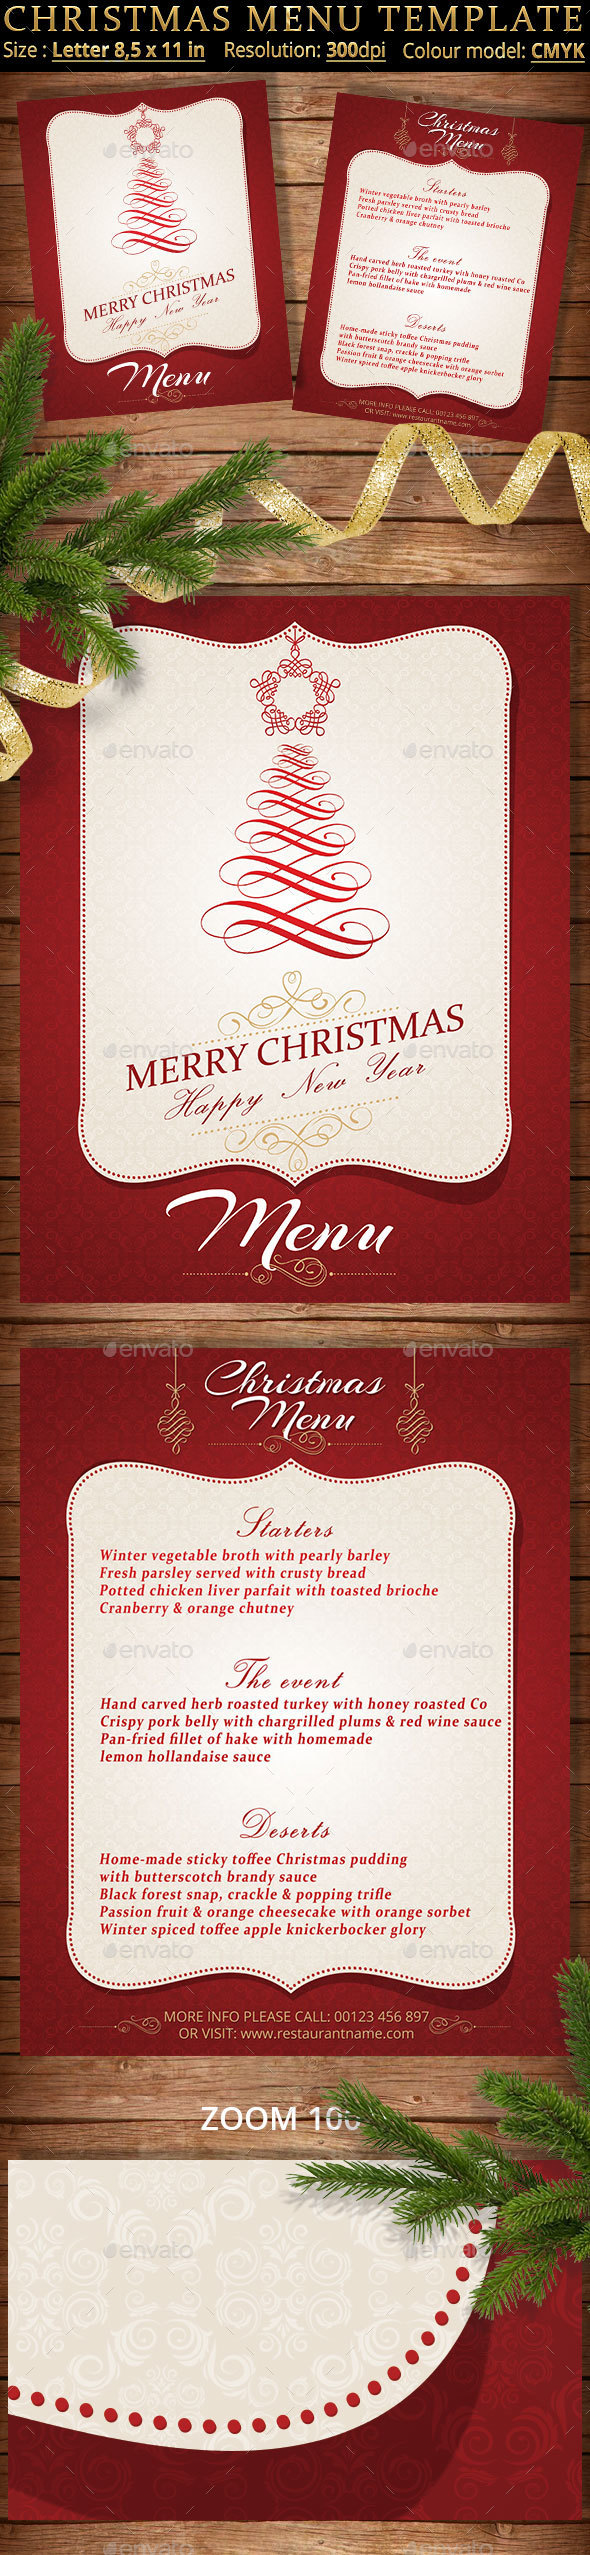 Christmas Menu Template - Restaurant Flyers